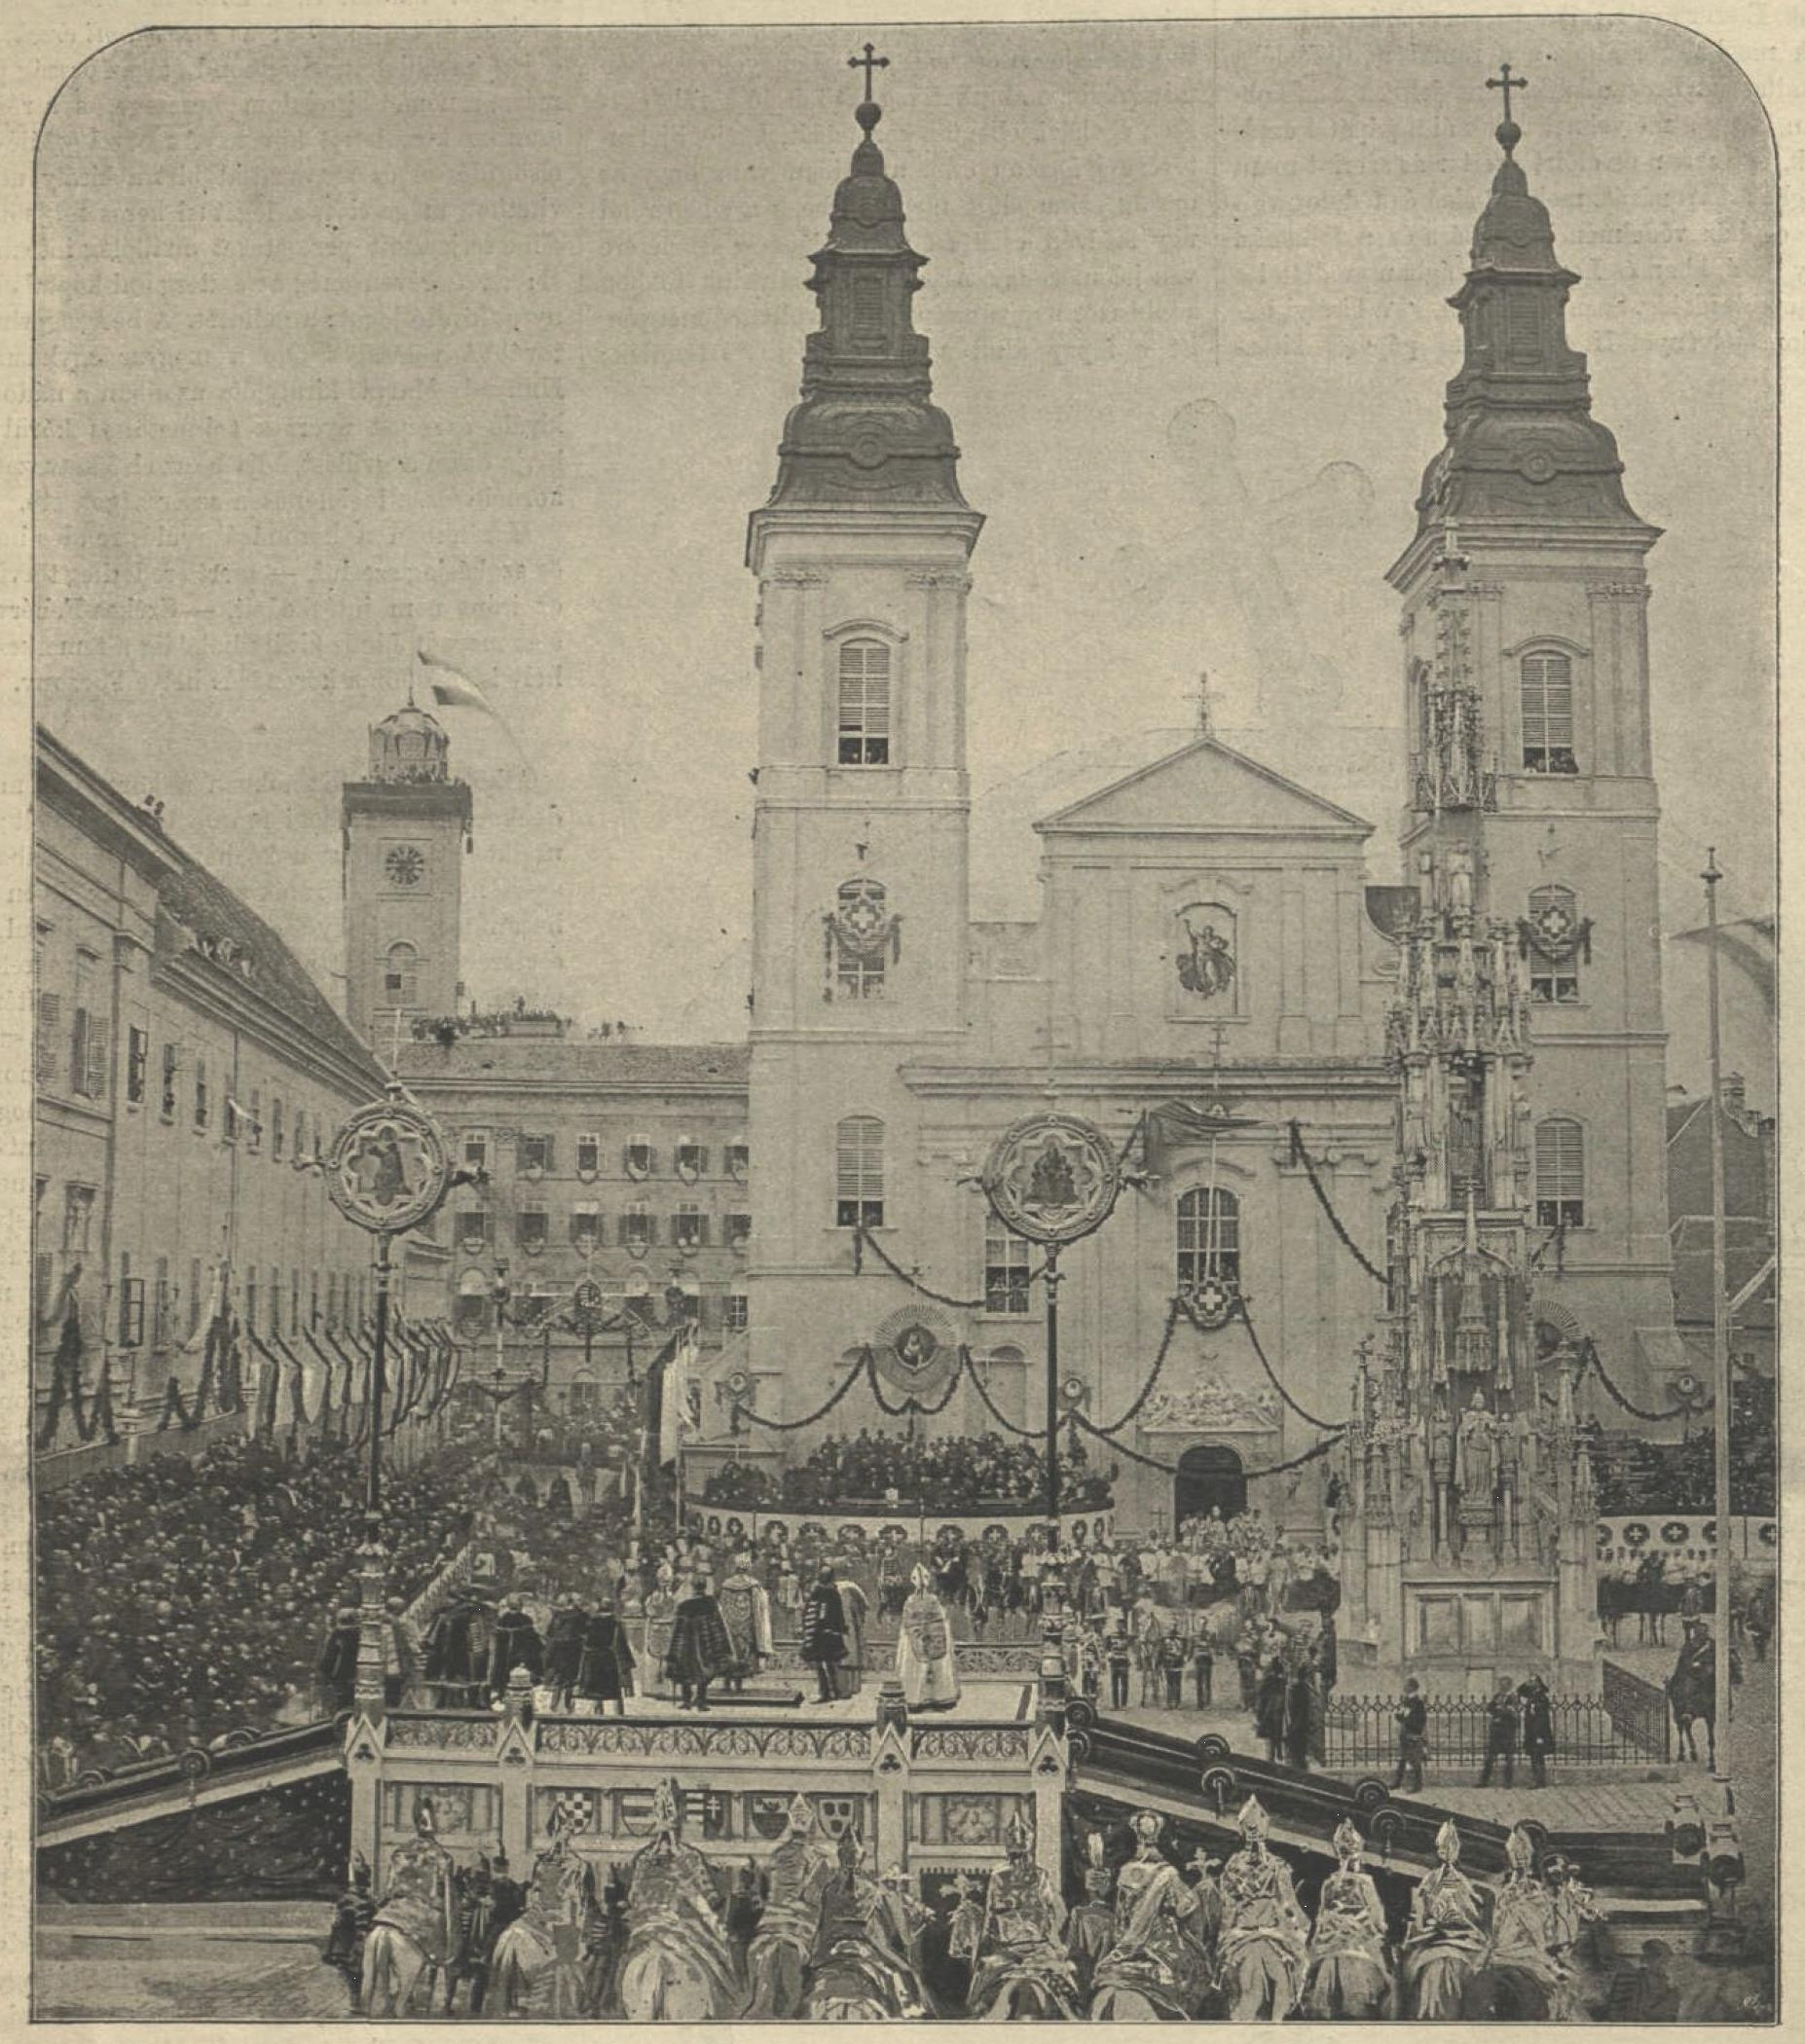 Photo of the coronation oath in Buda in front of the Inner City Parish Church (Budapest) on June 8, 1867.